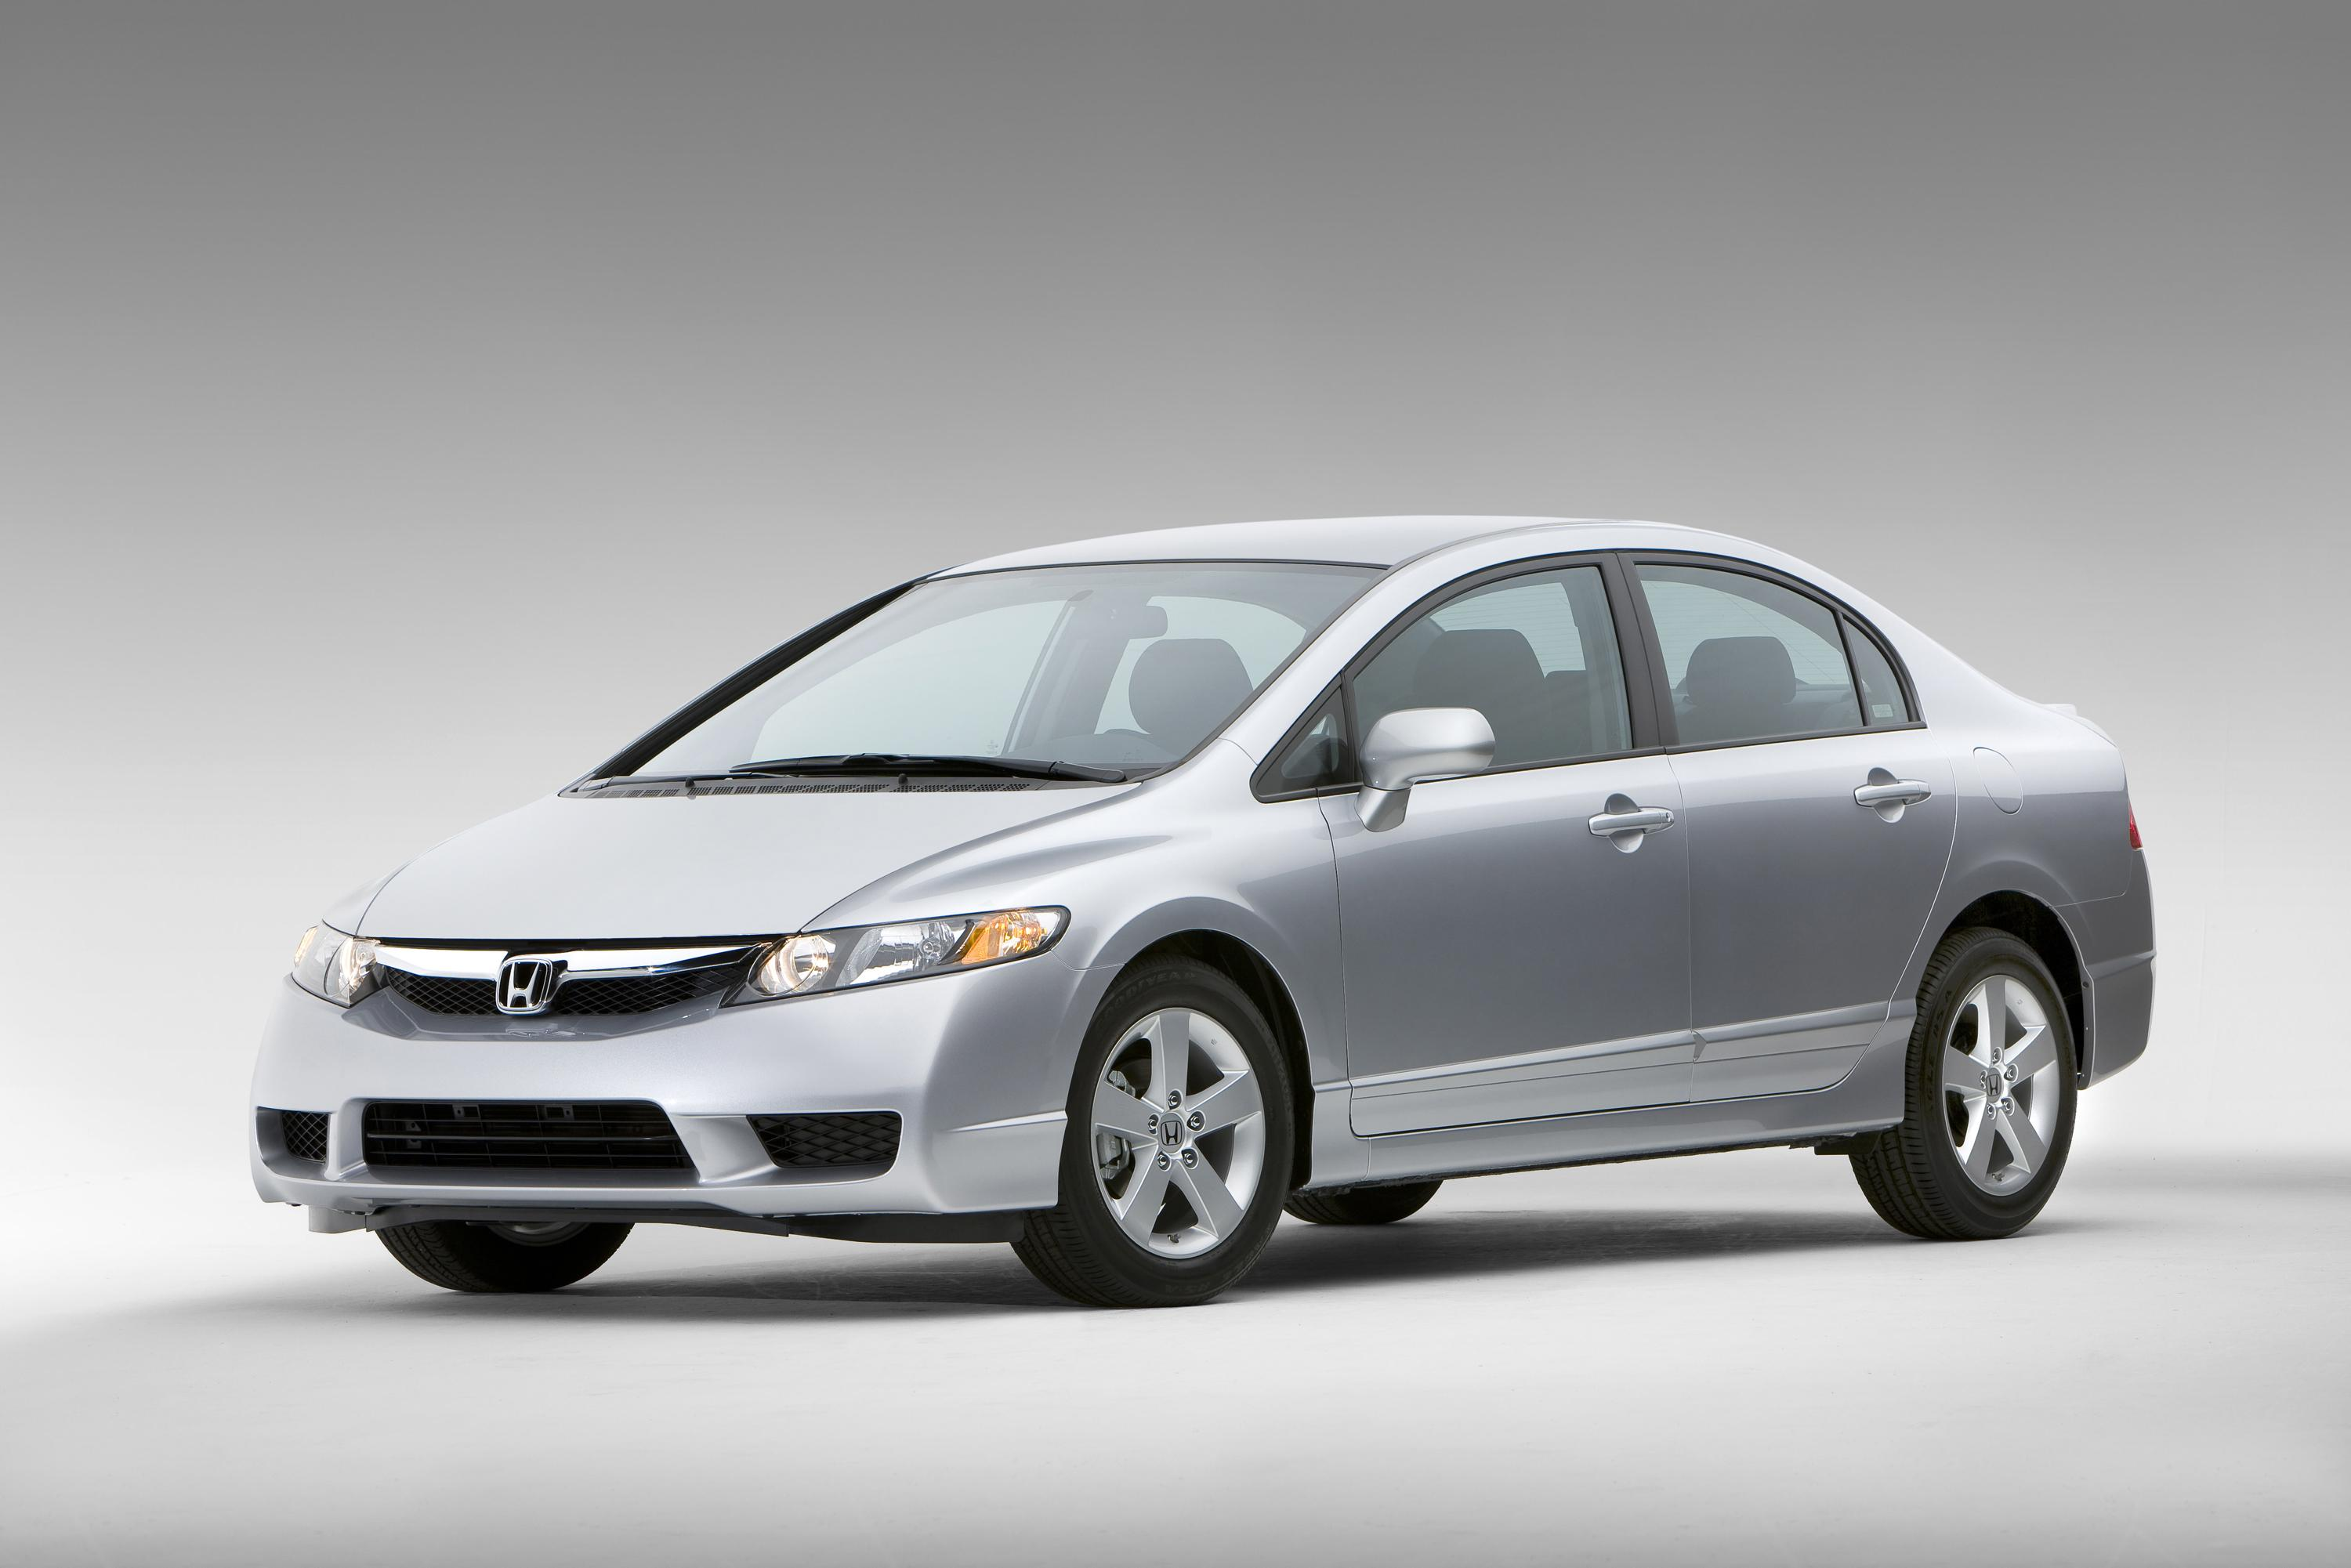 2009 Honda Civic Lx S Sedan Picture 7637